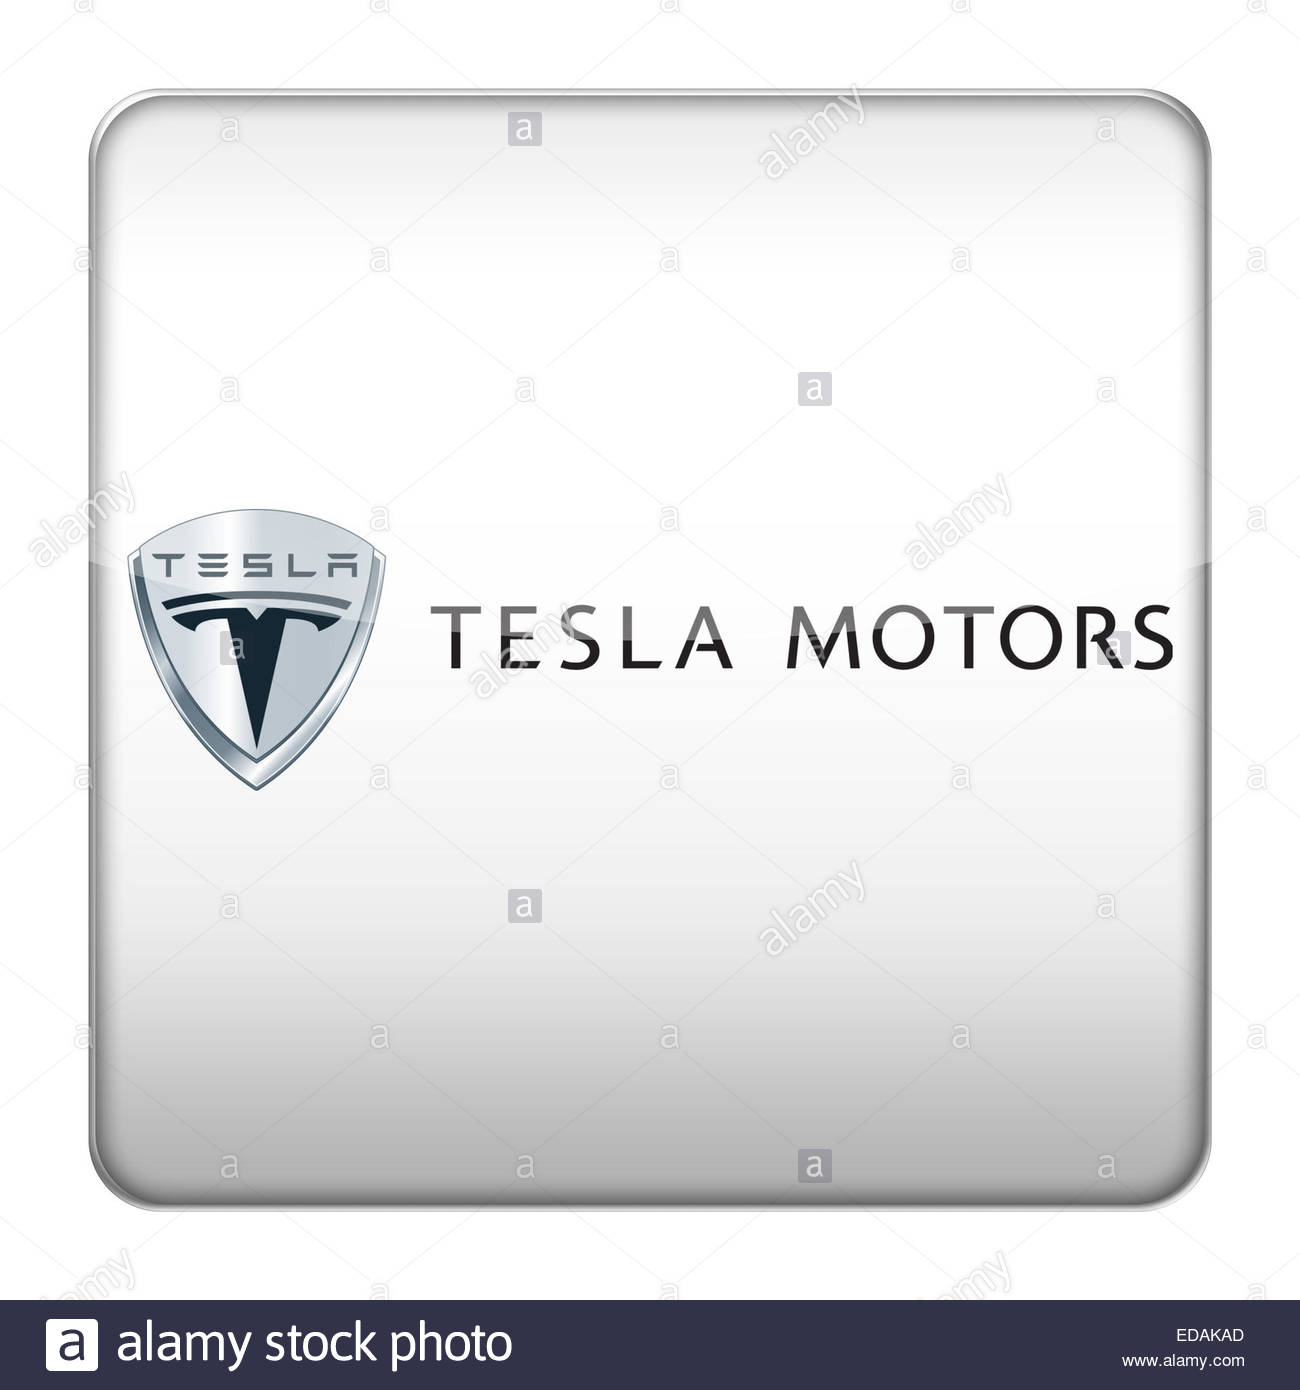 Tesla logo icon stock photo royalty free image 77066709 alamy tesla logo icon buycottarizona Gallery